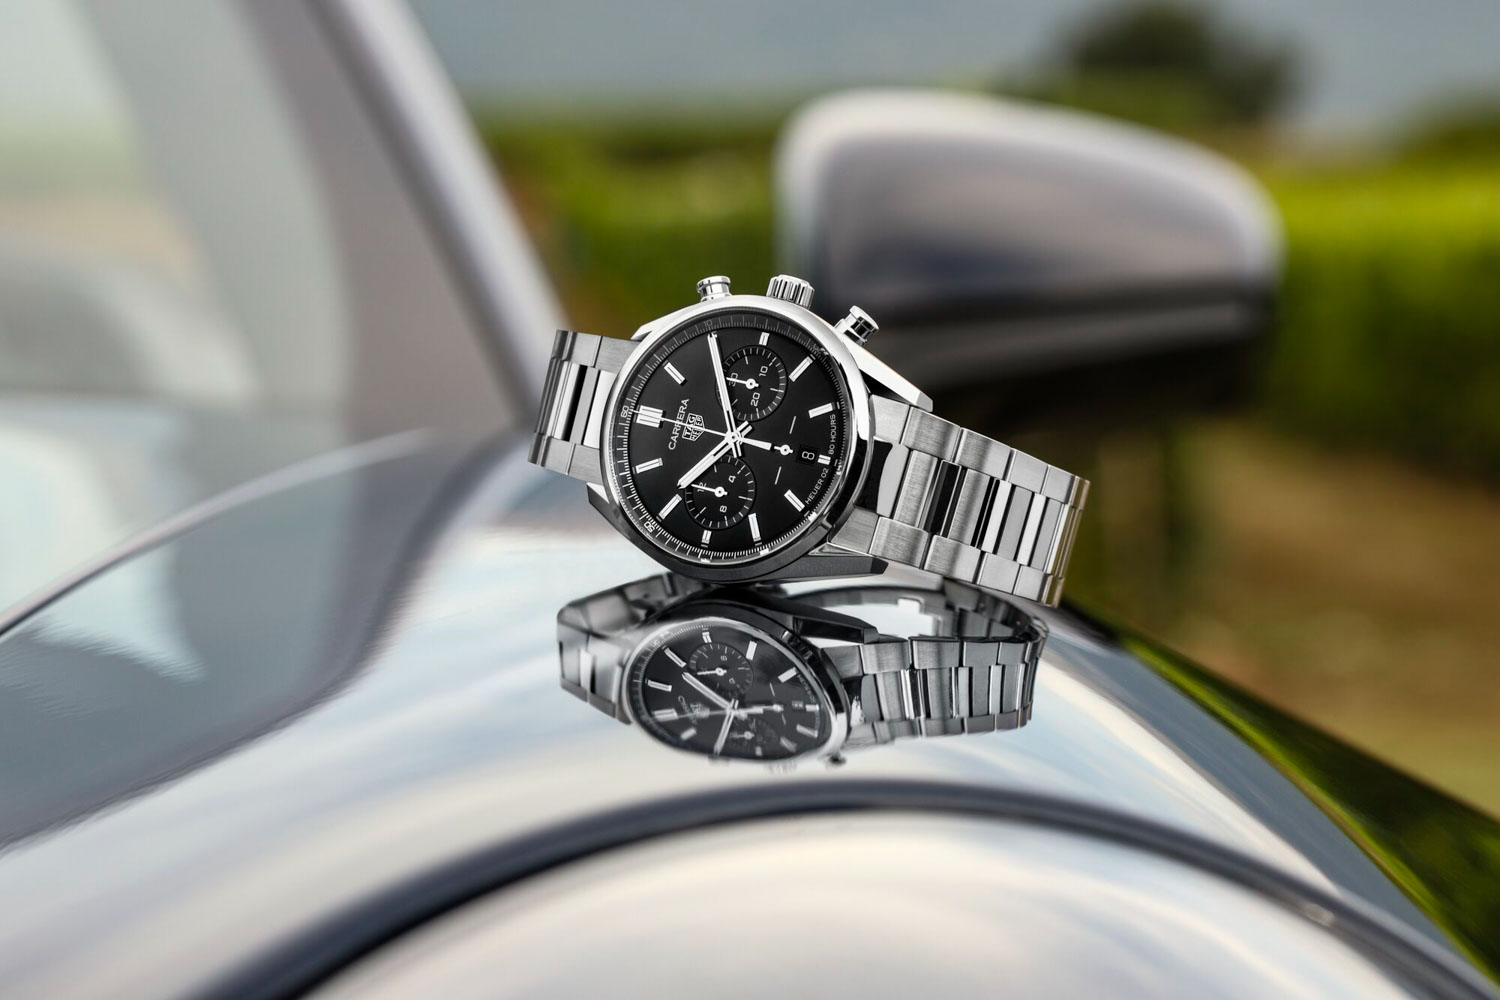 The TAG Heuer Carrera Chronograph 42 mm Calibre Heuer 02 Automatic, seen here with the black dial, fitted on the stainless-steel H-shaped bracelet